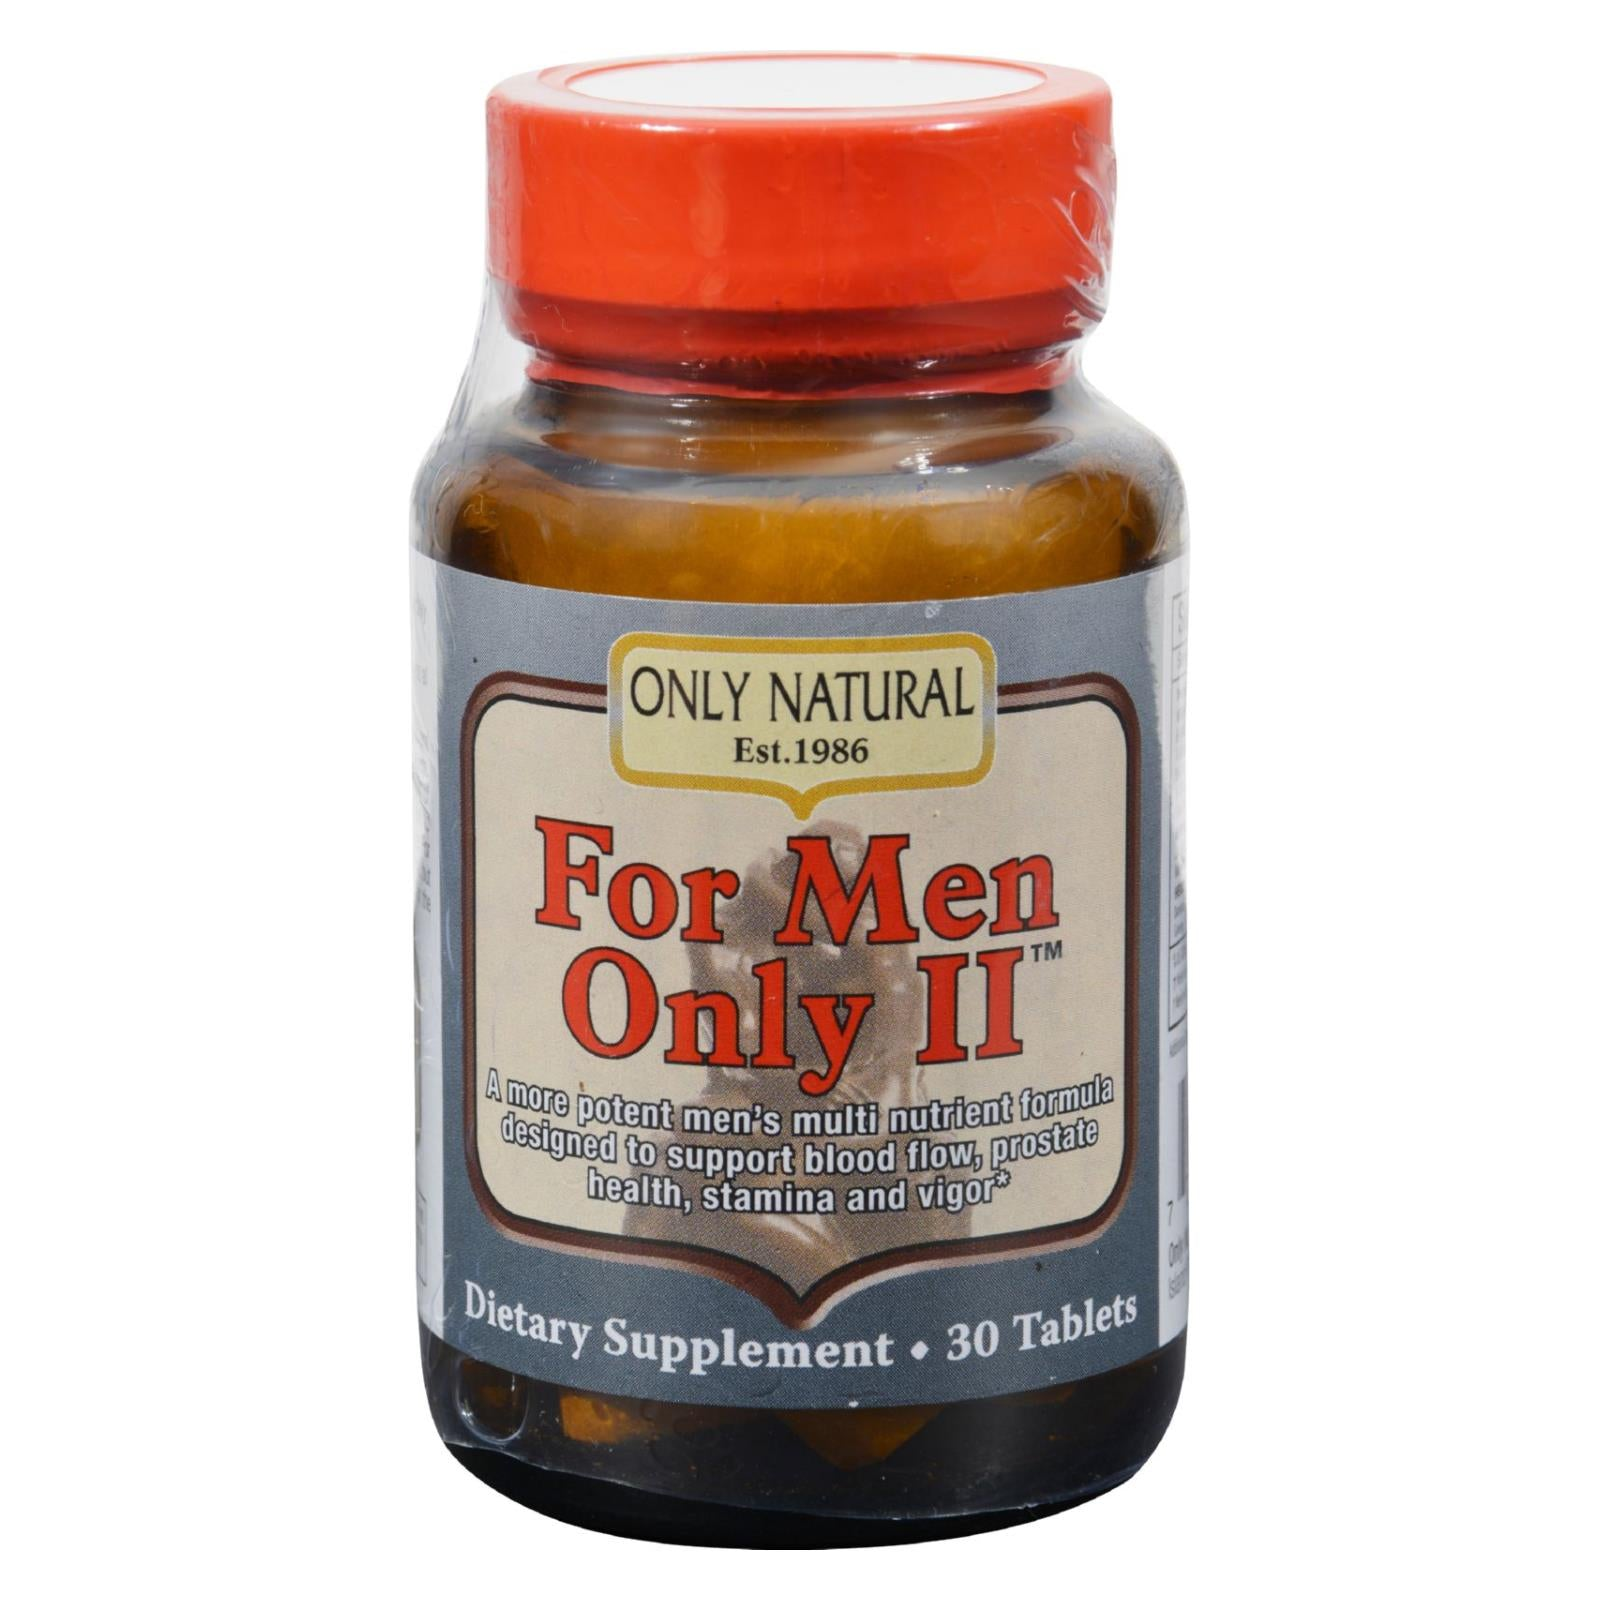 Only Natural For Men Only Ii - 30 Tablets HG0455907